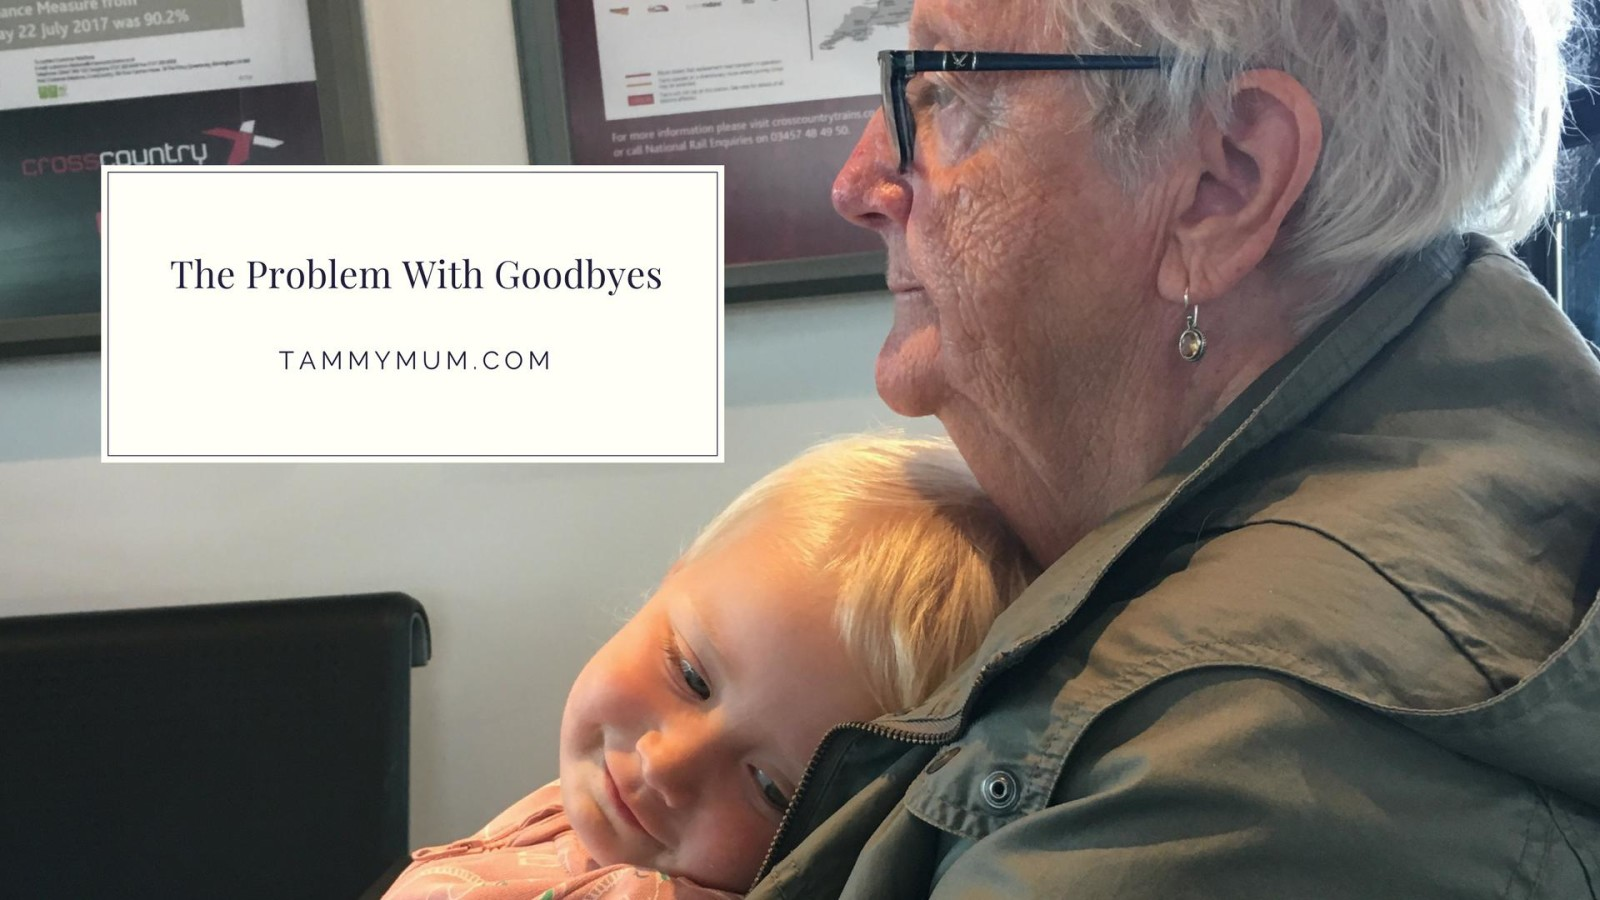 The Problem With Goodbyes